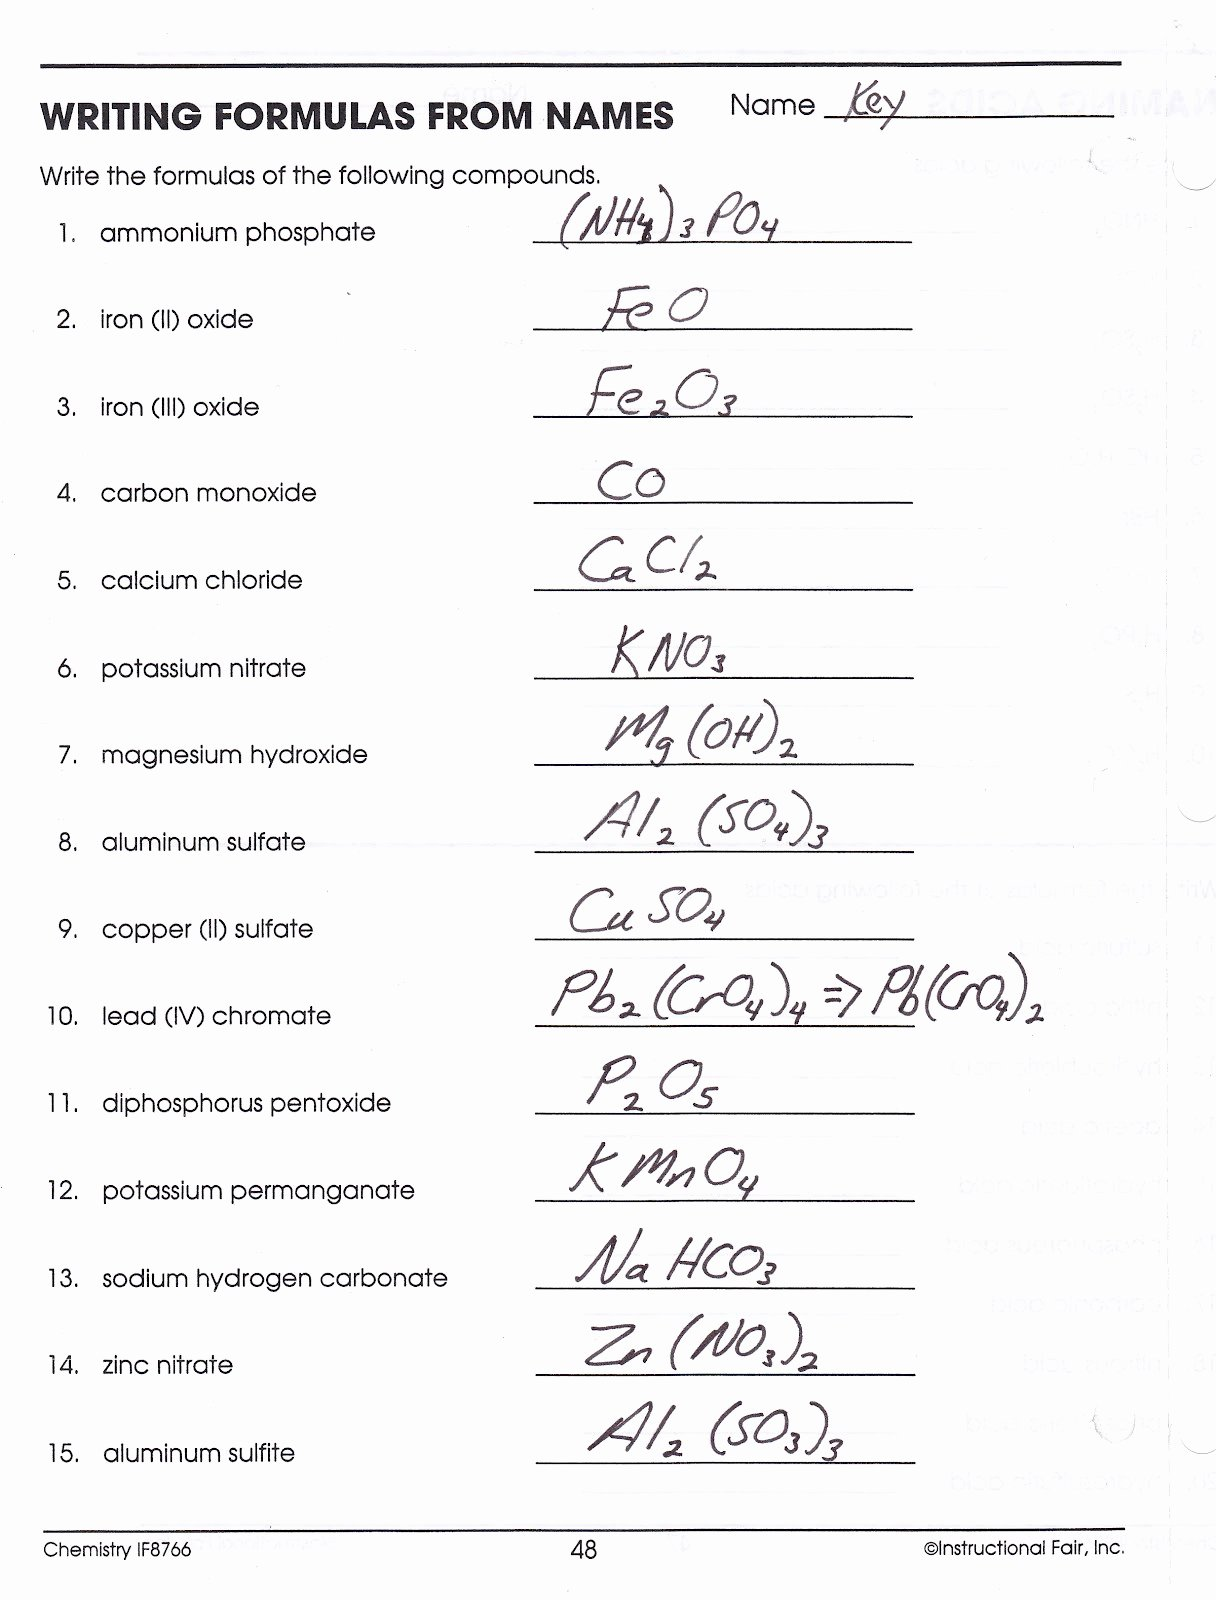 Writing Ionic formulas Worksheet Awesome Chemical formula Writing Worksheet Write Chemical formulas